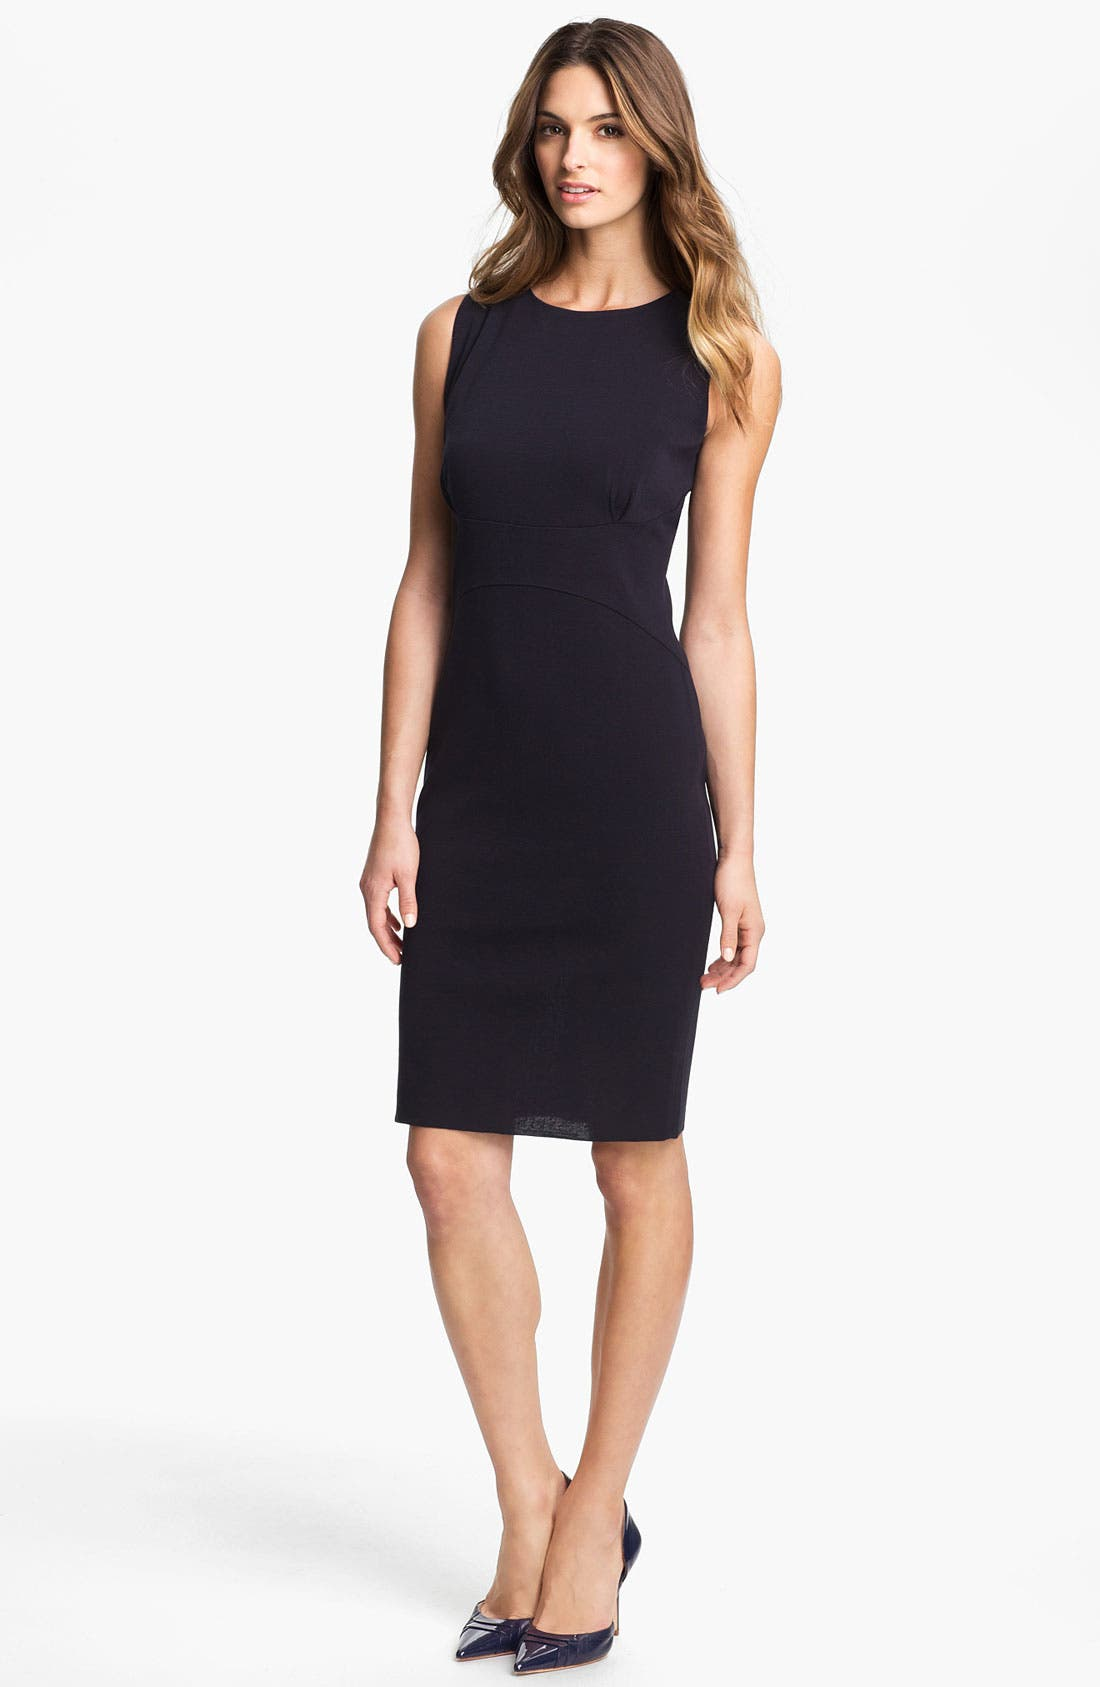 Alternate Image 1 Selected - Exclusively Misook 'Alex' Sheath Dress (Petite) (Online Exclusive)